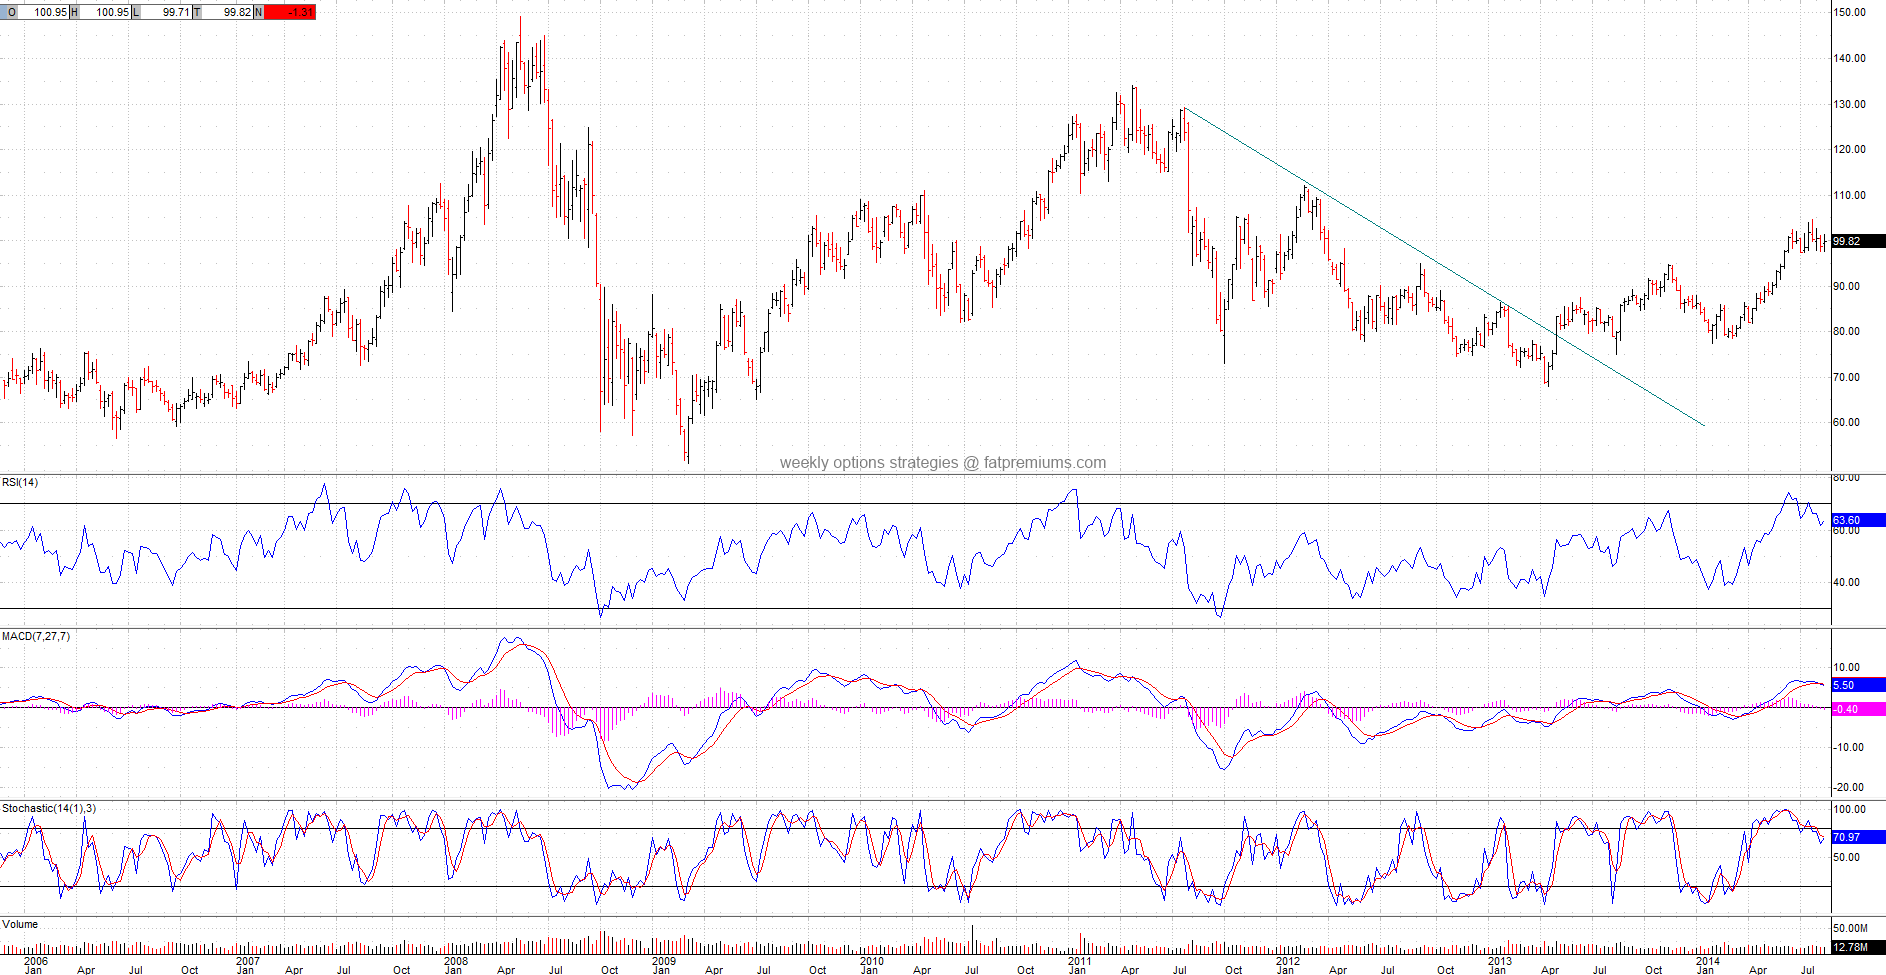 Apache Corporation (NYSE:APA) Weekly Chart (2014-08-23) Bearish